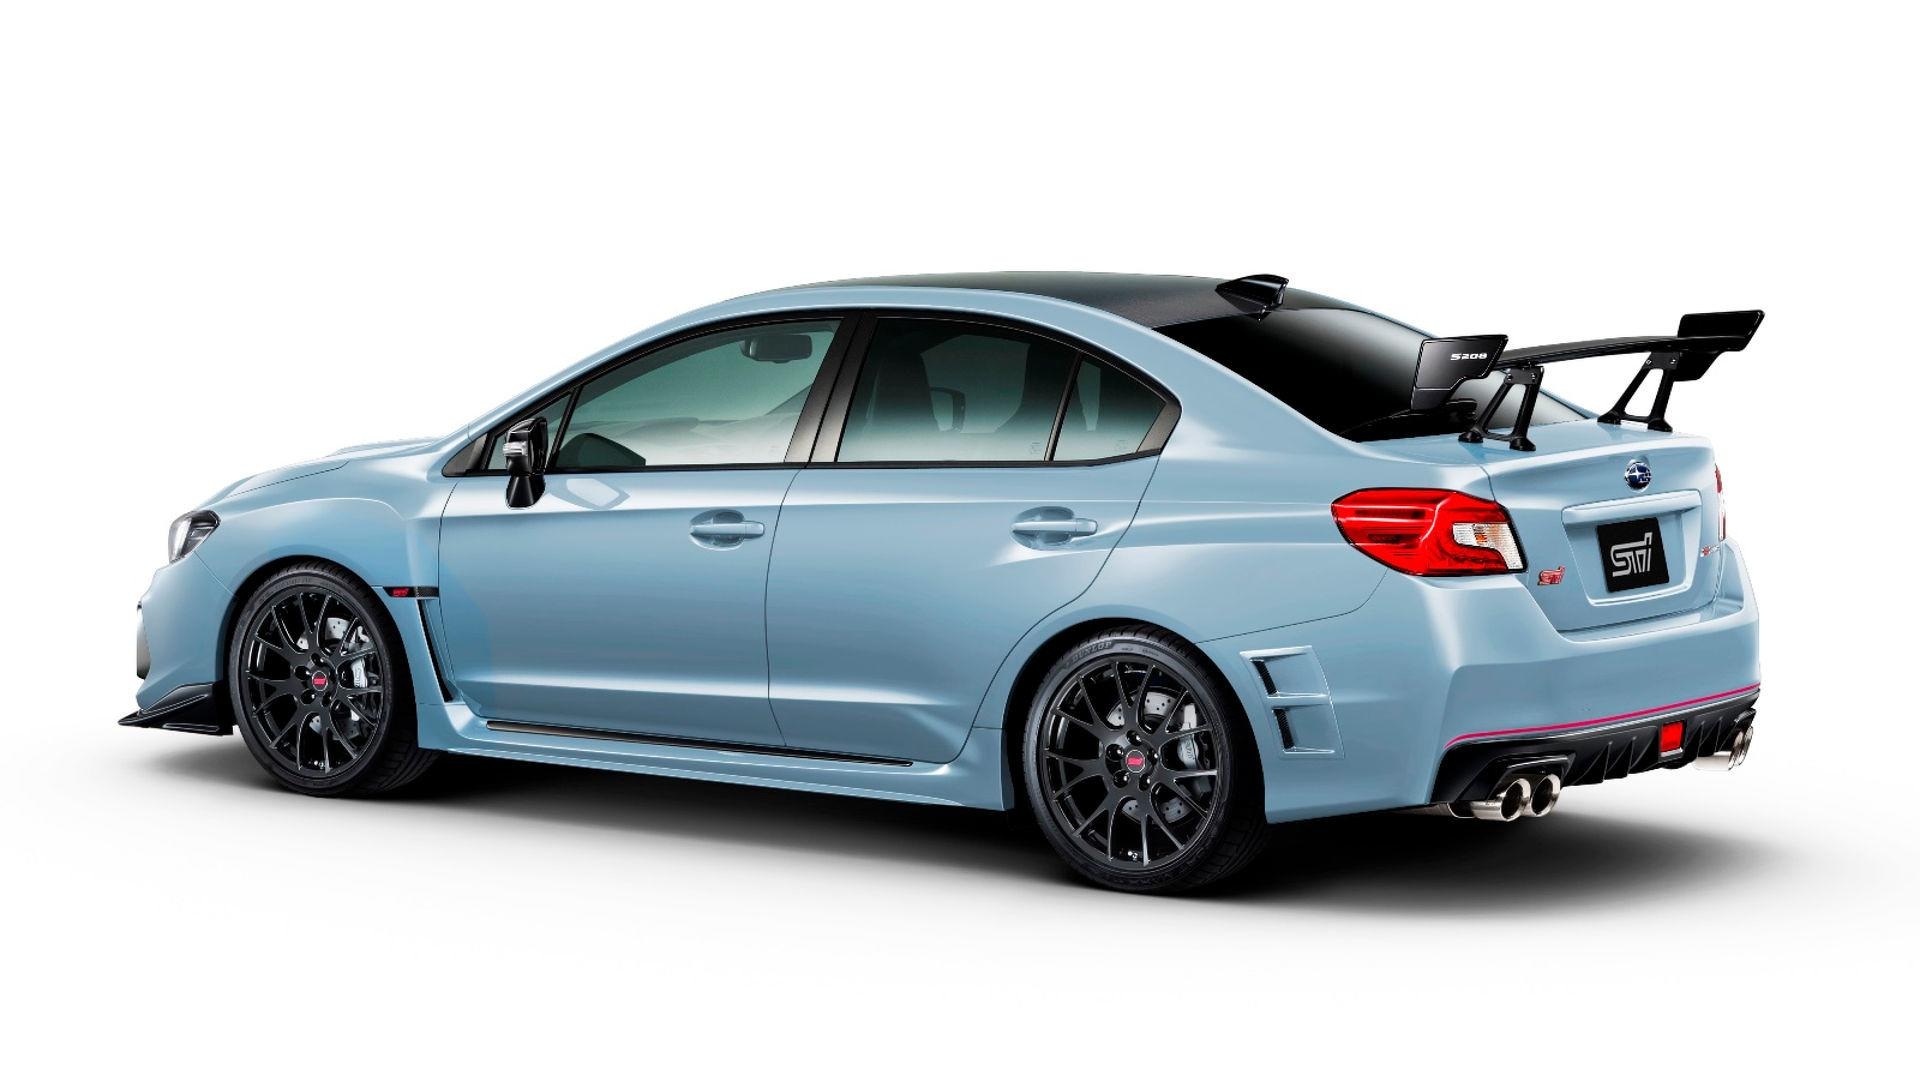 Subaru S208 Wrx Sti Limited Edition Up For Grabs Top Speed